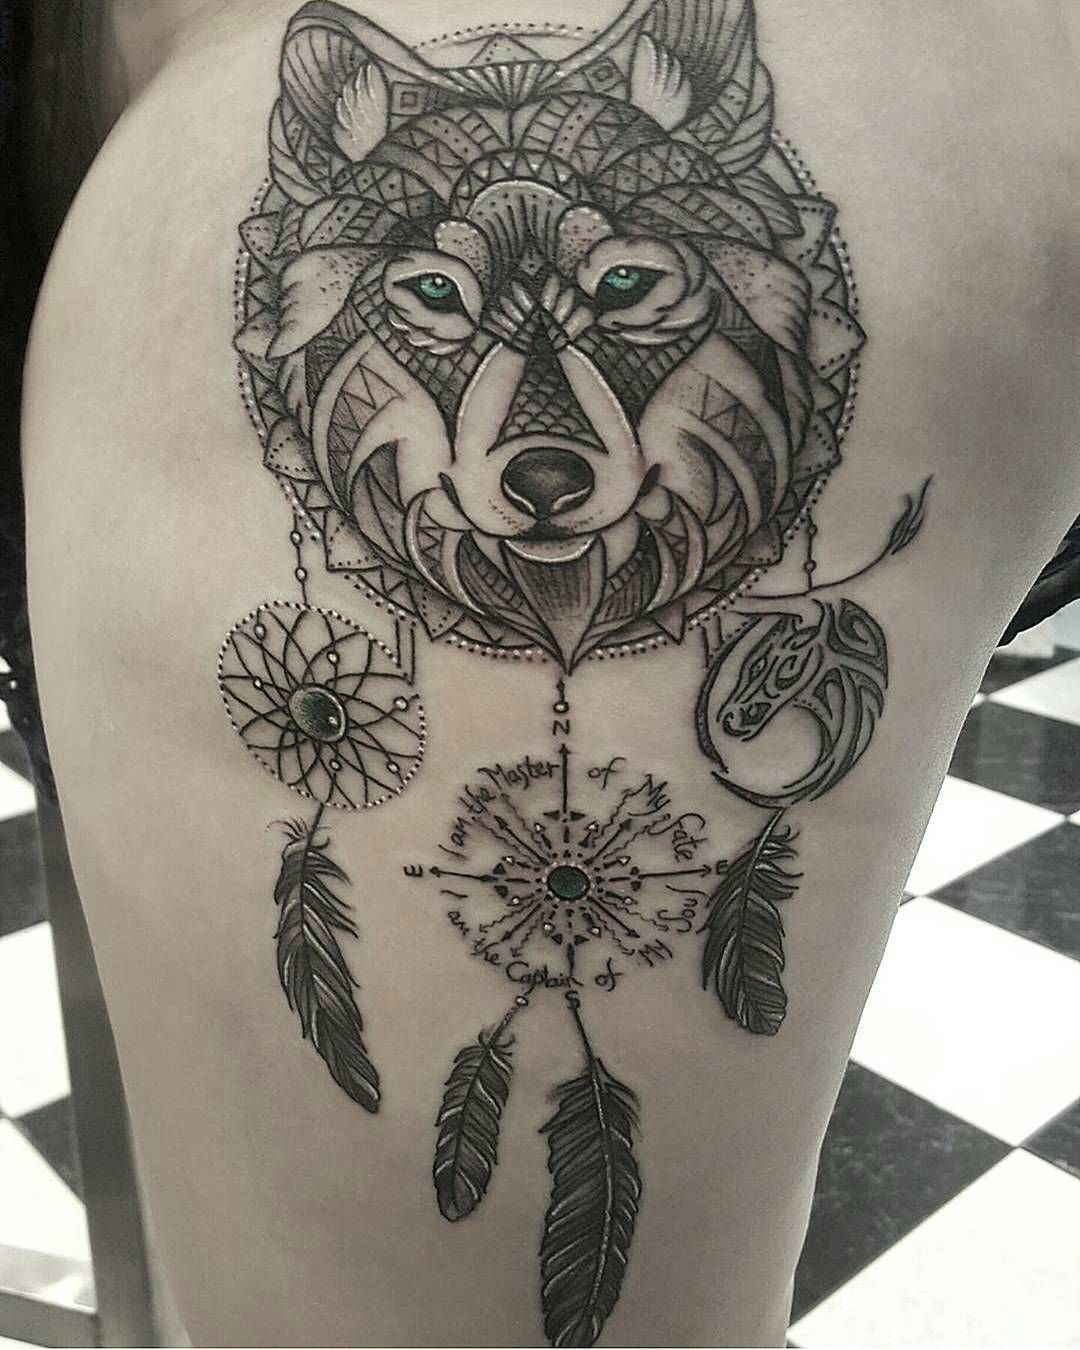 50 Of The Most Beautiful Wolf Tattoo Designs The Internet Has Ever Seen Dream Catcher Tattoo Wolf Dreamcatcher Tattoo Wolf Tattoos For Women